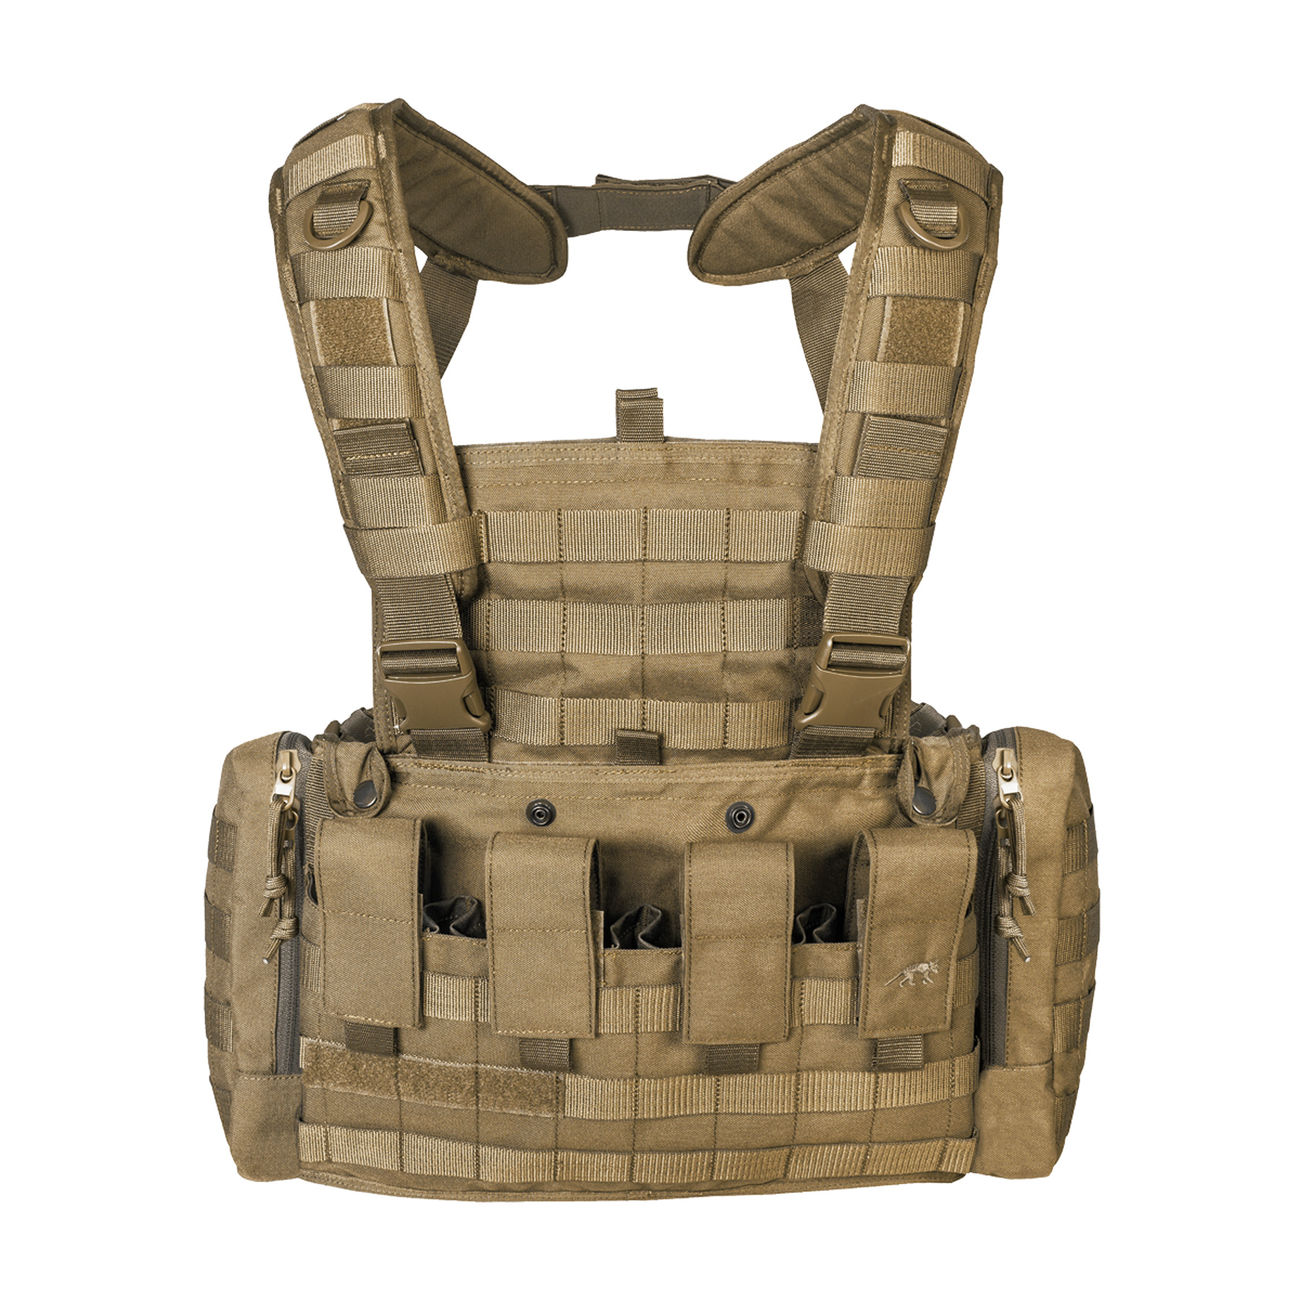 TT Chest Rig MK II M4 coyote brown 1